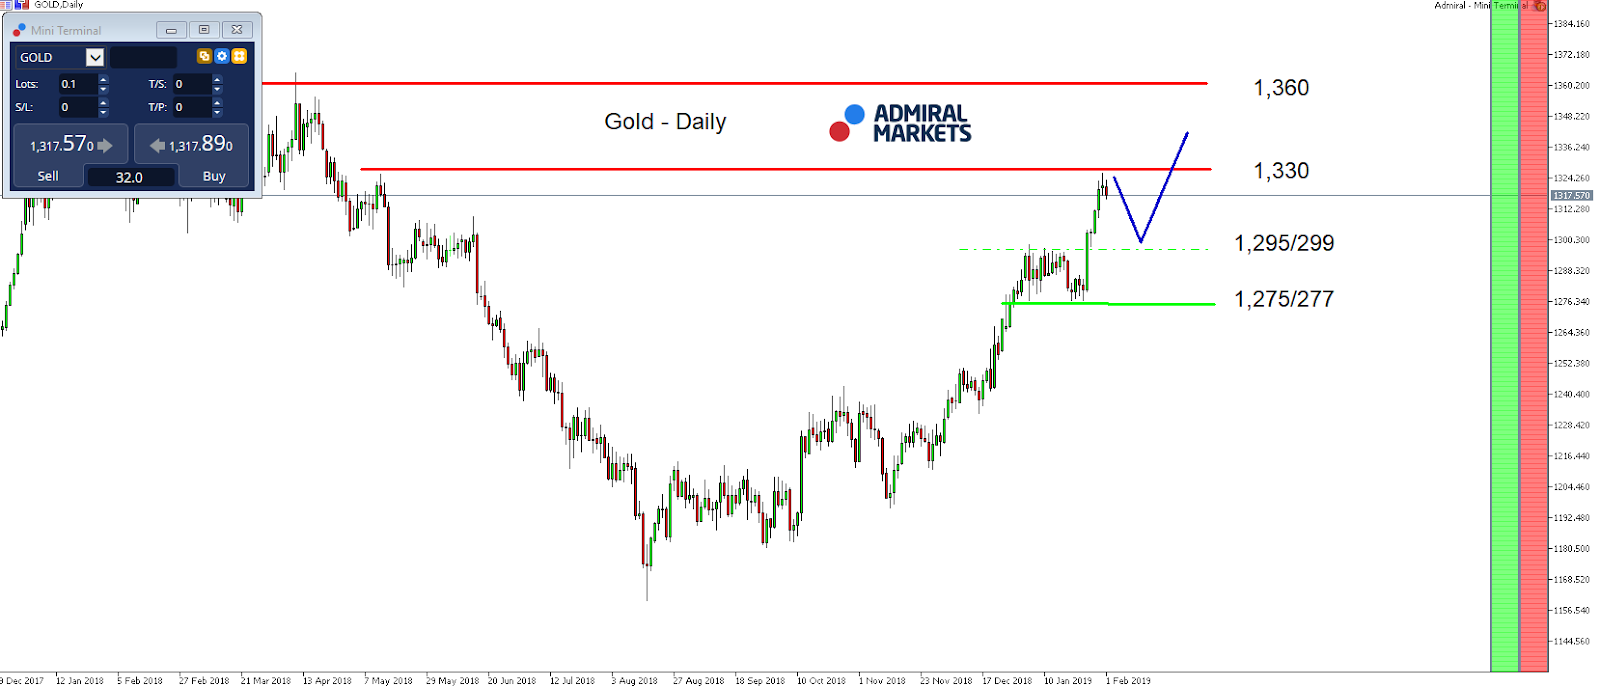 Gold Index Prediction